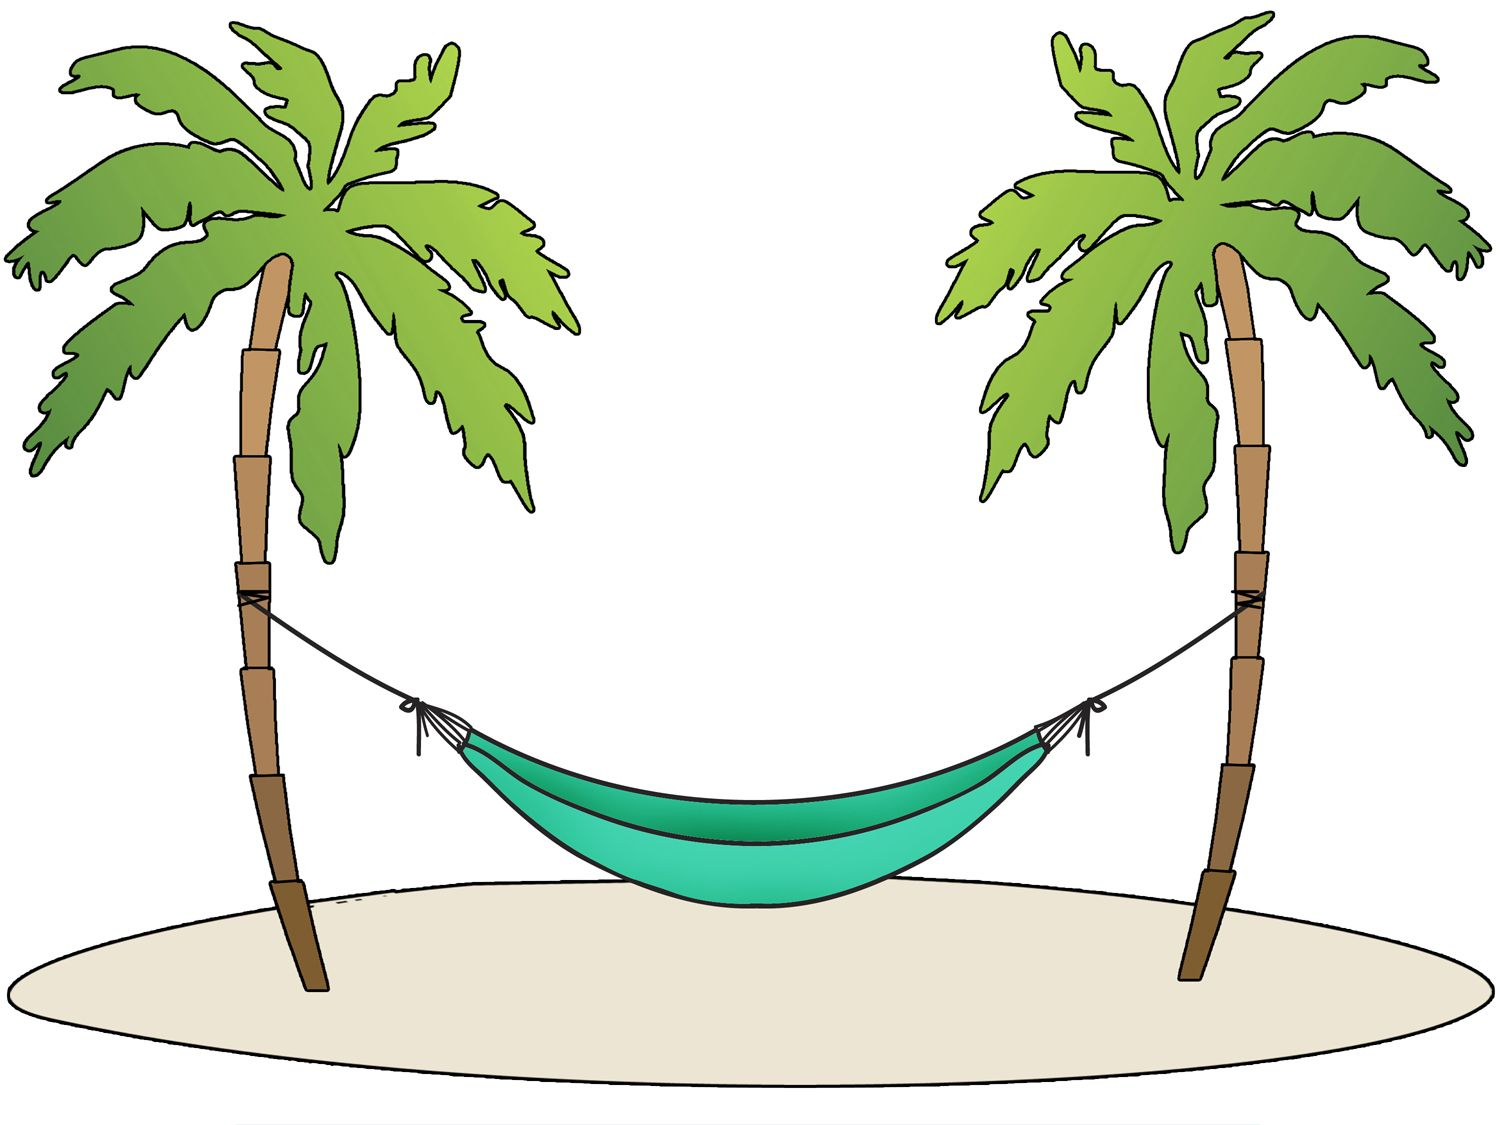 Hammock and trees clipart banner freeuse library Pin by Rachel Craig on Retirement party | Beach clipart, Beach ... banner freeuse library